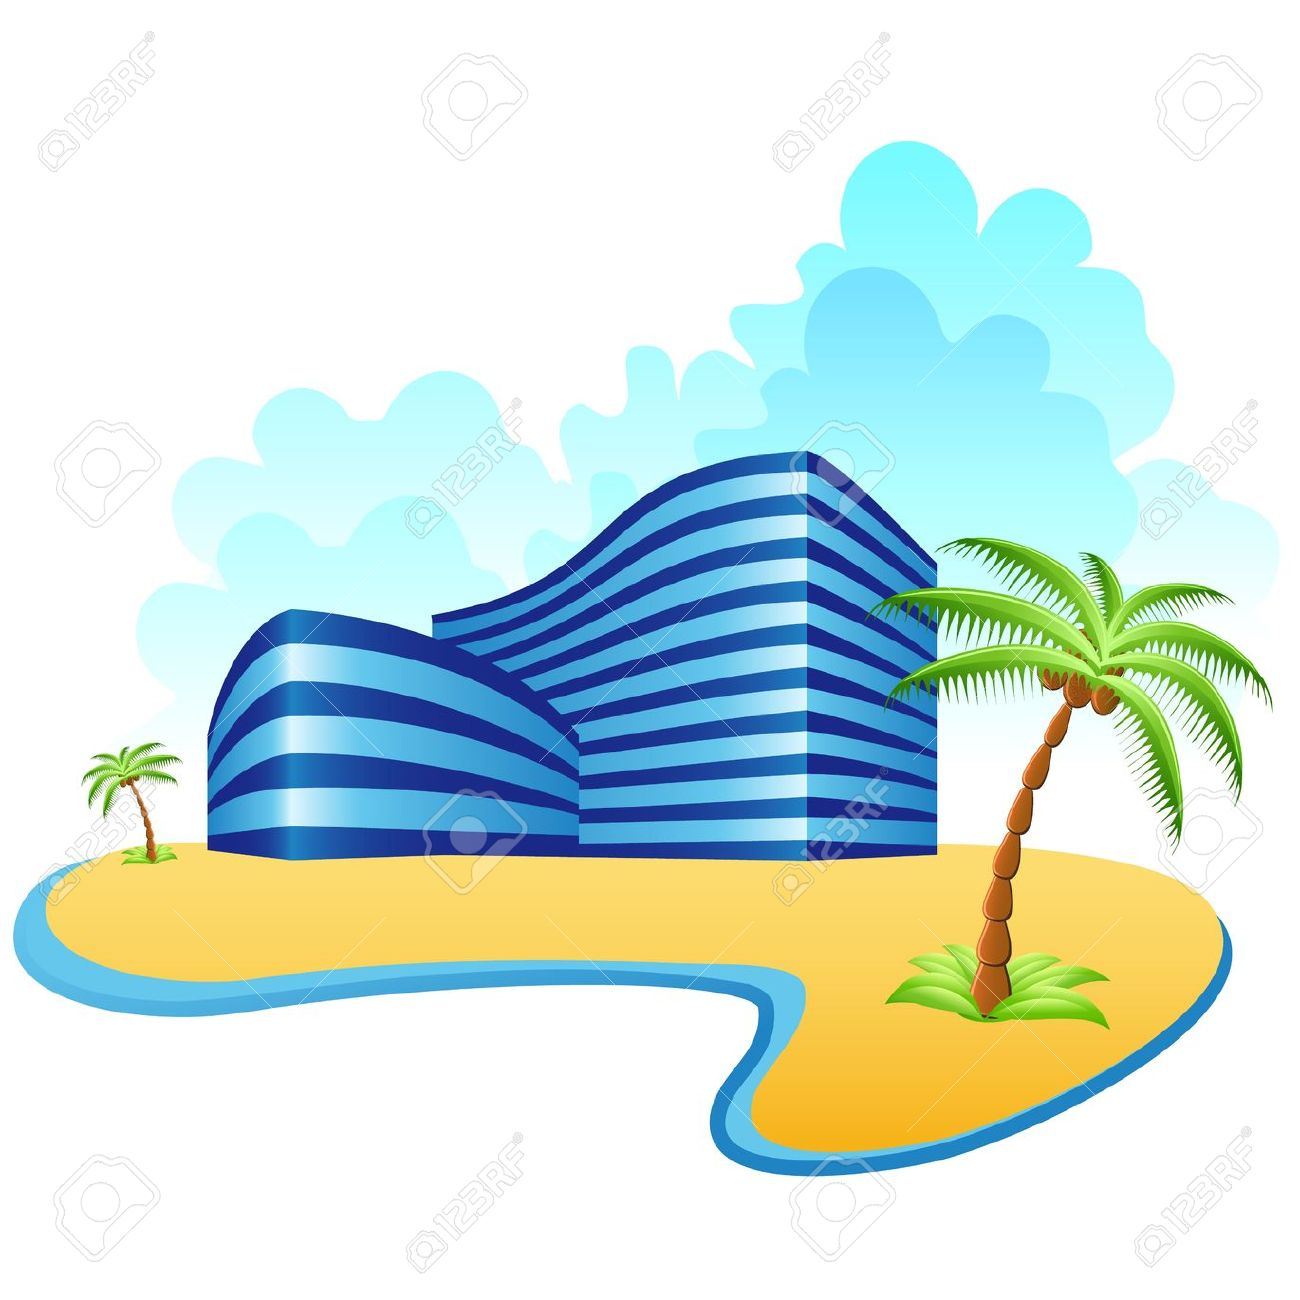 Hotels And The Beach Royalty Free Cliparts, Vectors, And Stock.